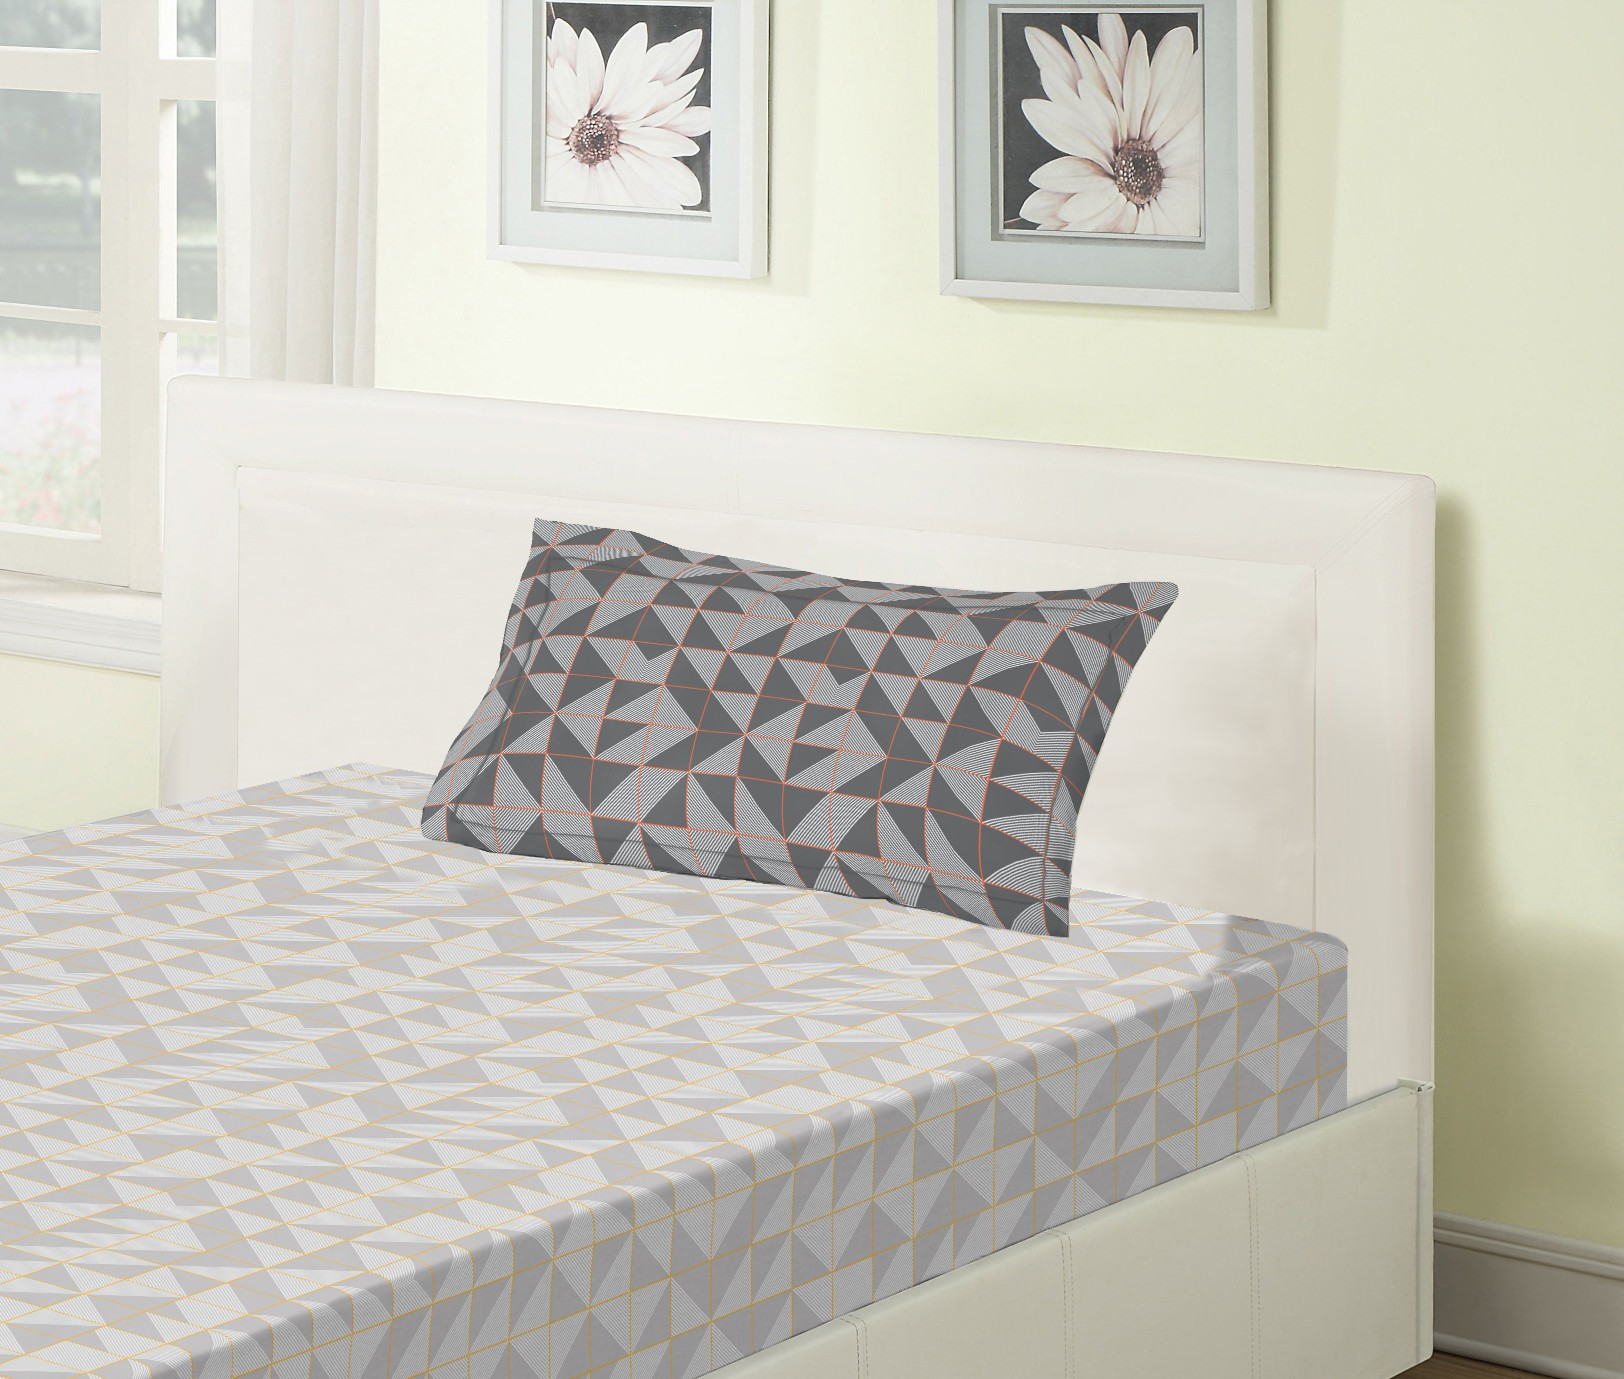 Emilia Cotton Single Bedsheets in Grey Colour by Living Essence